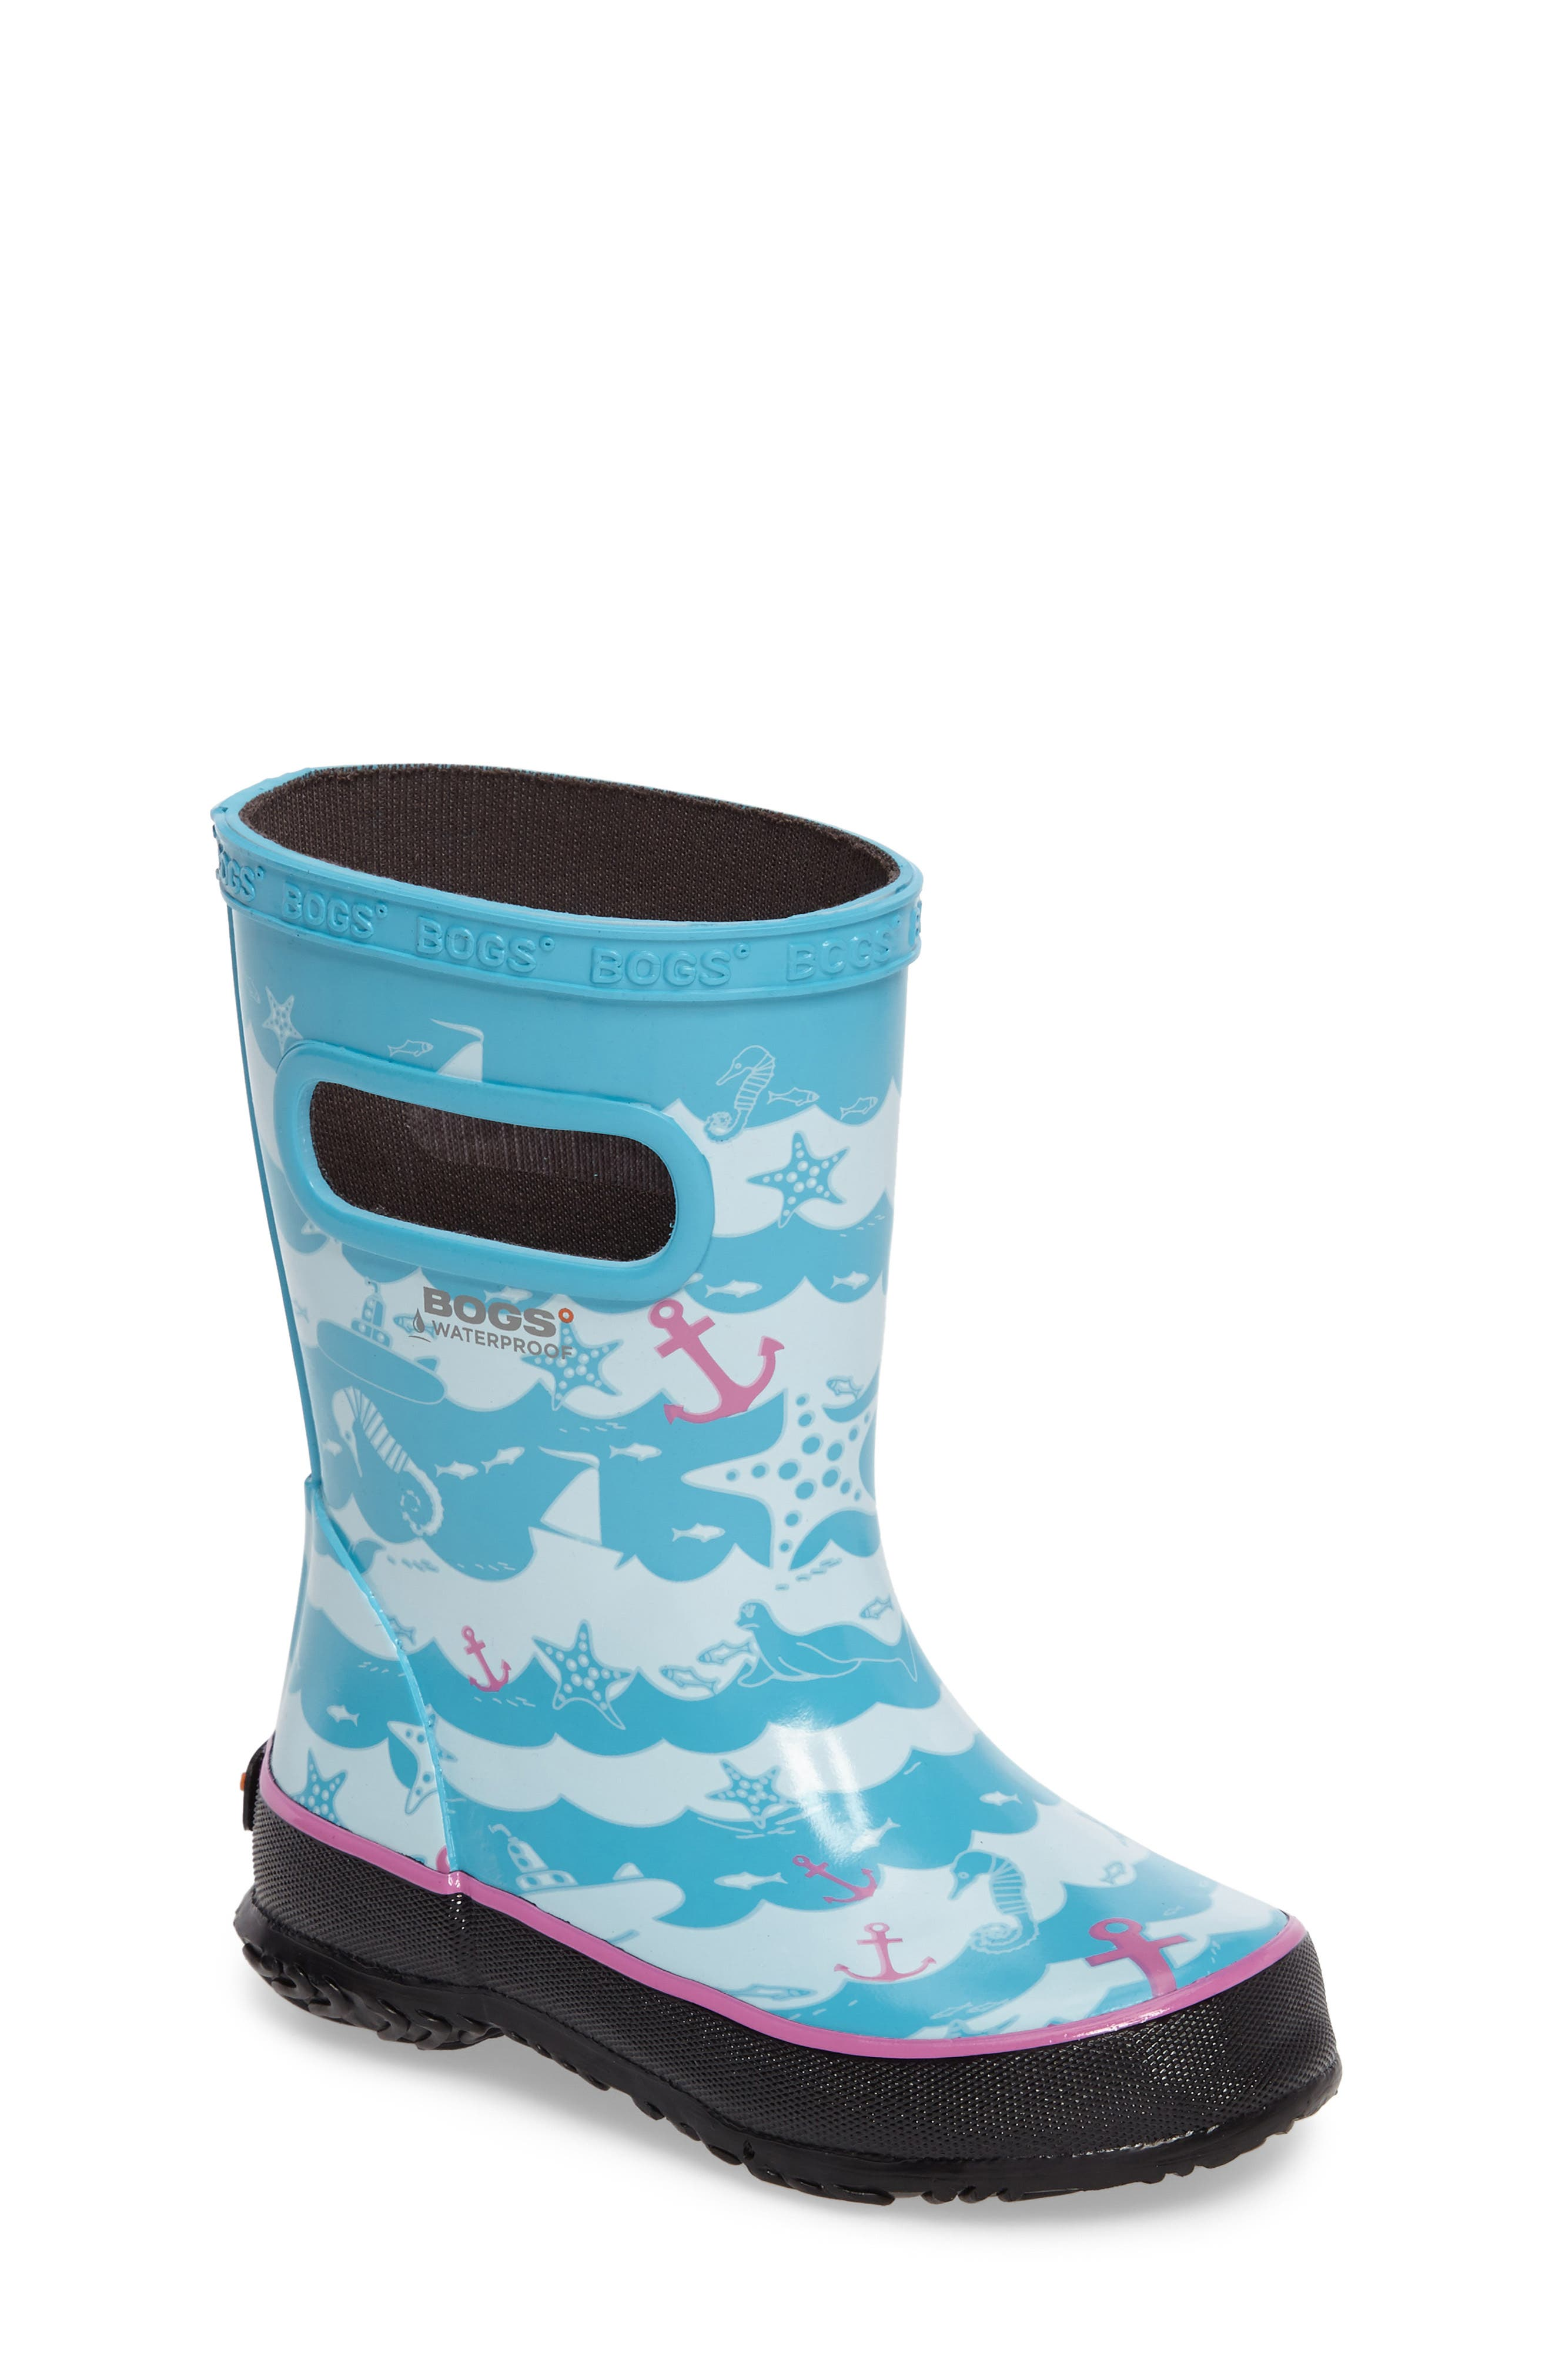 Bogs Skipper at Sea Rubber Rain Boot (Baby, Walker, Toddler & Little Kid)